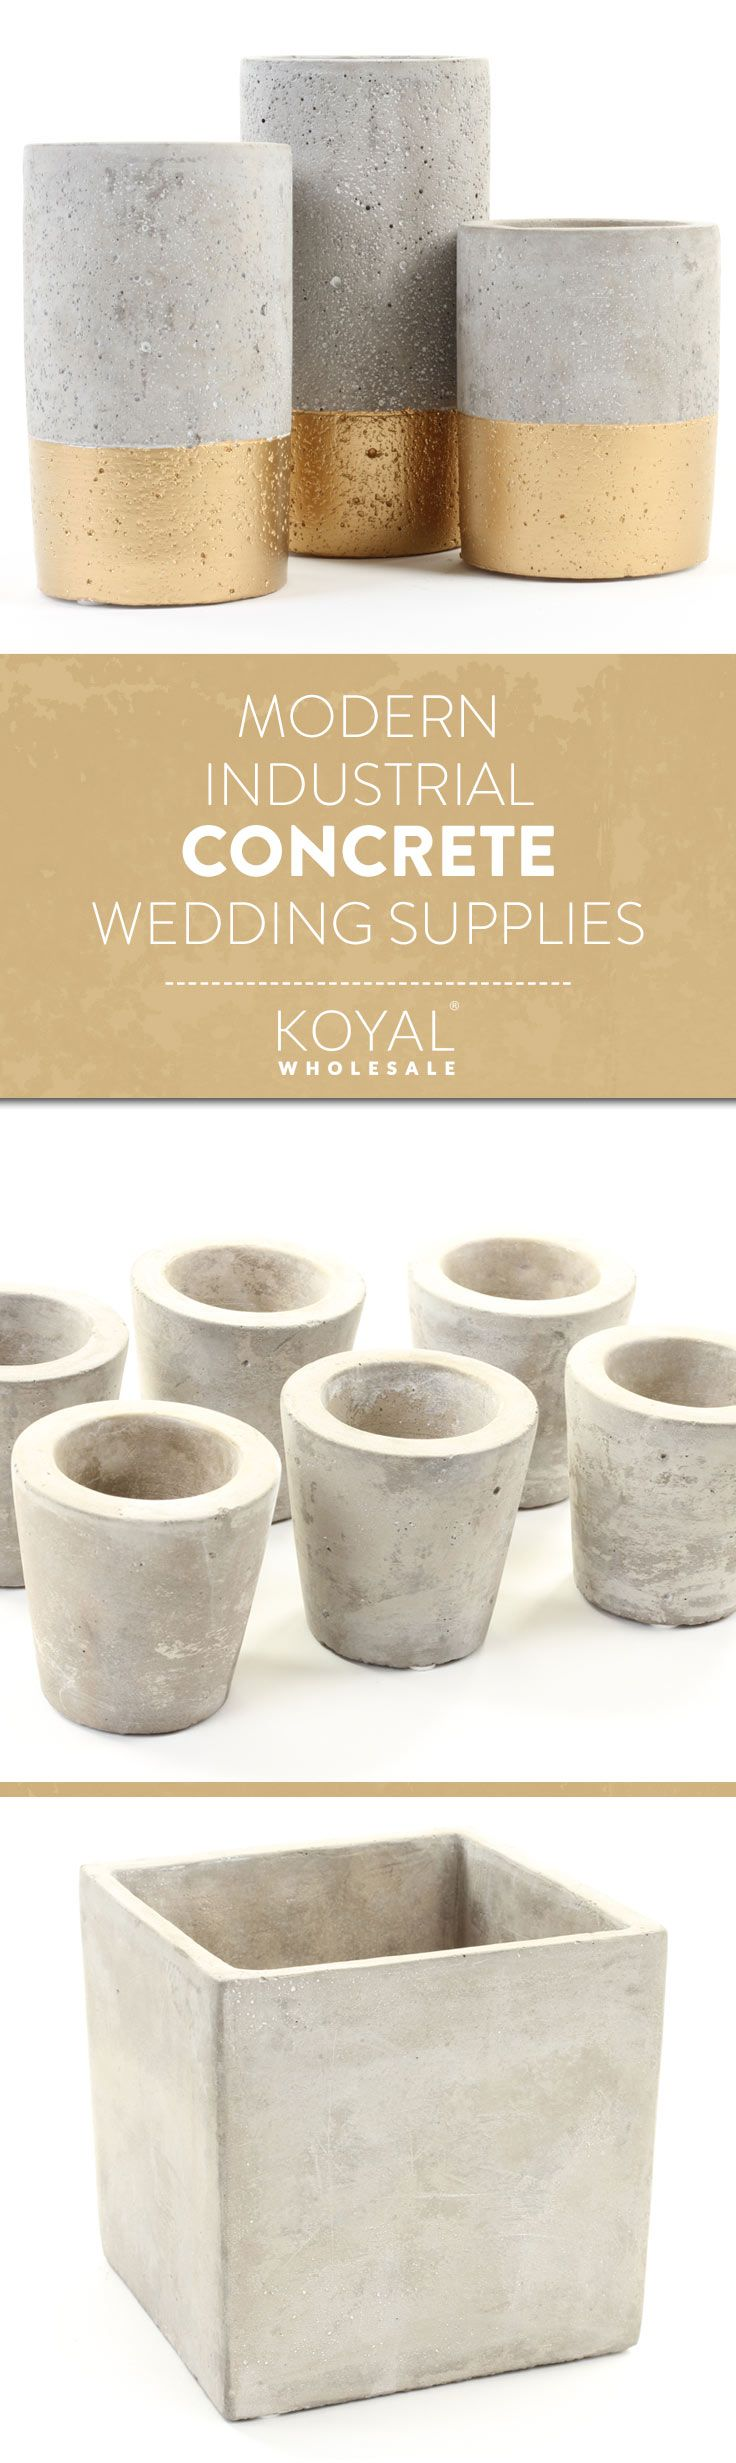 Modern Industrial Concrete Cement Wedding Supplies by KOYAL WHOLESALE  Wholesale Wedding & Special Event Supplies | Free Shipping Over $99+  Wedding Decorations & Centerpieces Vases, Charger Plates, Candle Holders, and More.